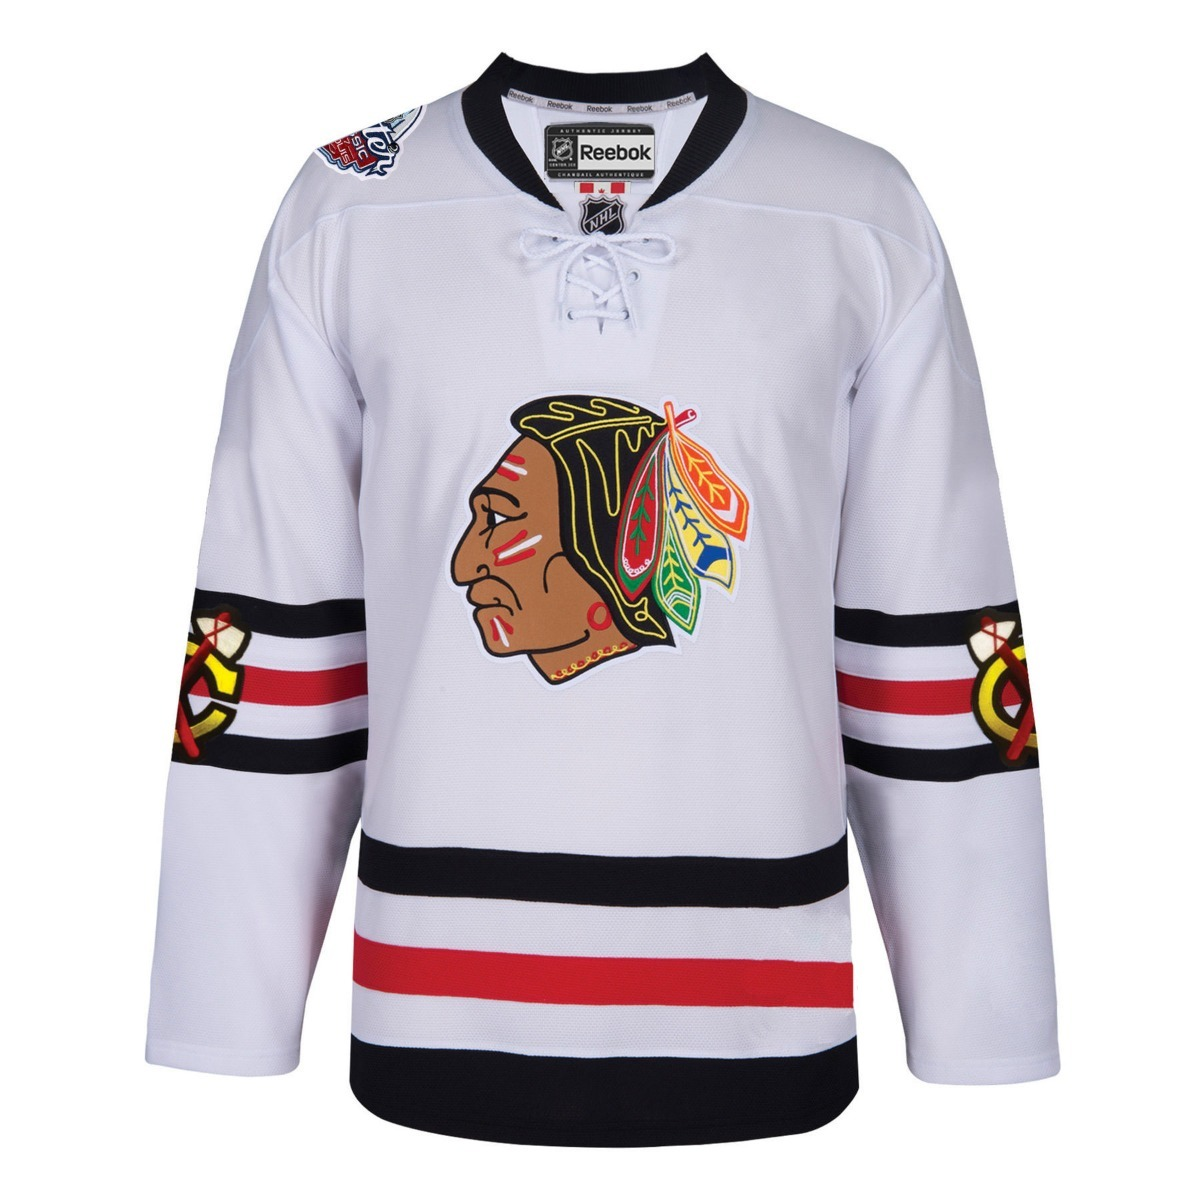 camisetas nhl chicago blackhawks  88 kane traida de ny. Cargando zoom. cf26ef3e71b